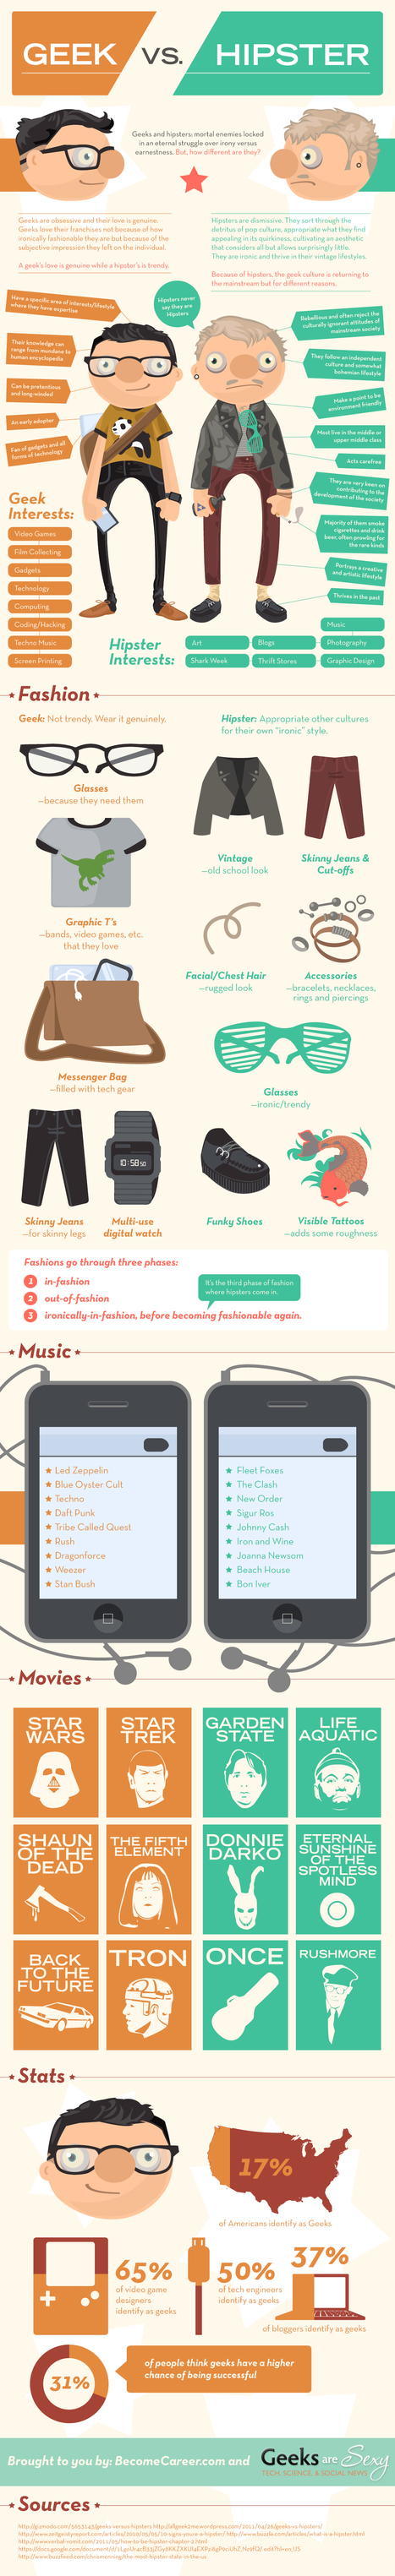 Geeks vs. Hipsters [Infographic] | Social media and education | Scoop.it